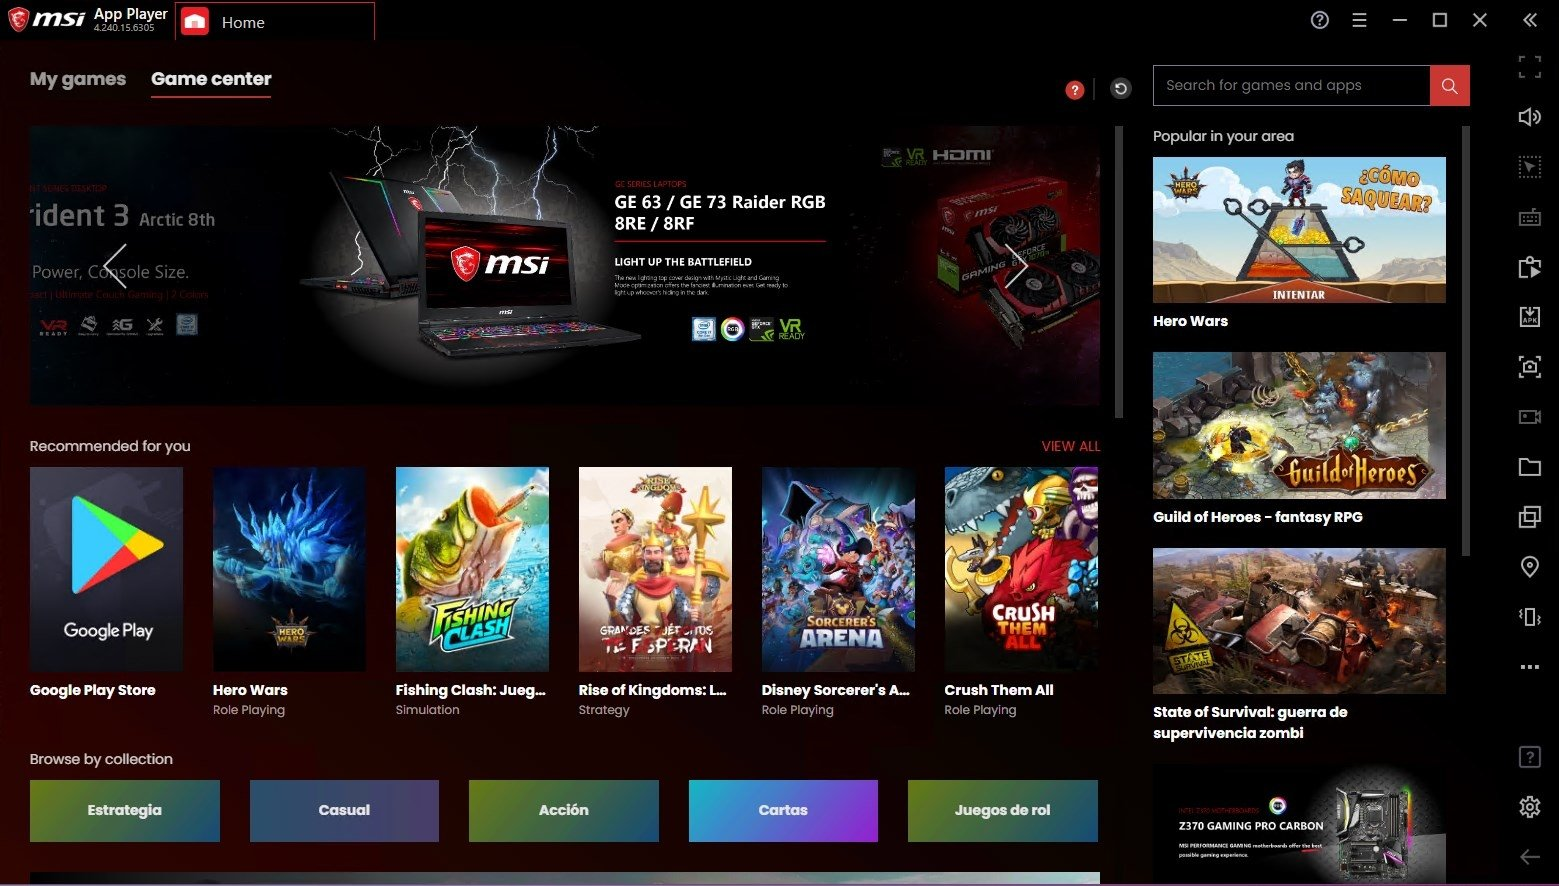 Download Free MSI App Player 4.240.15.6305 – Download for PC Free